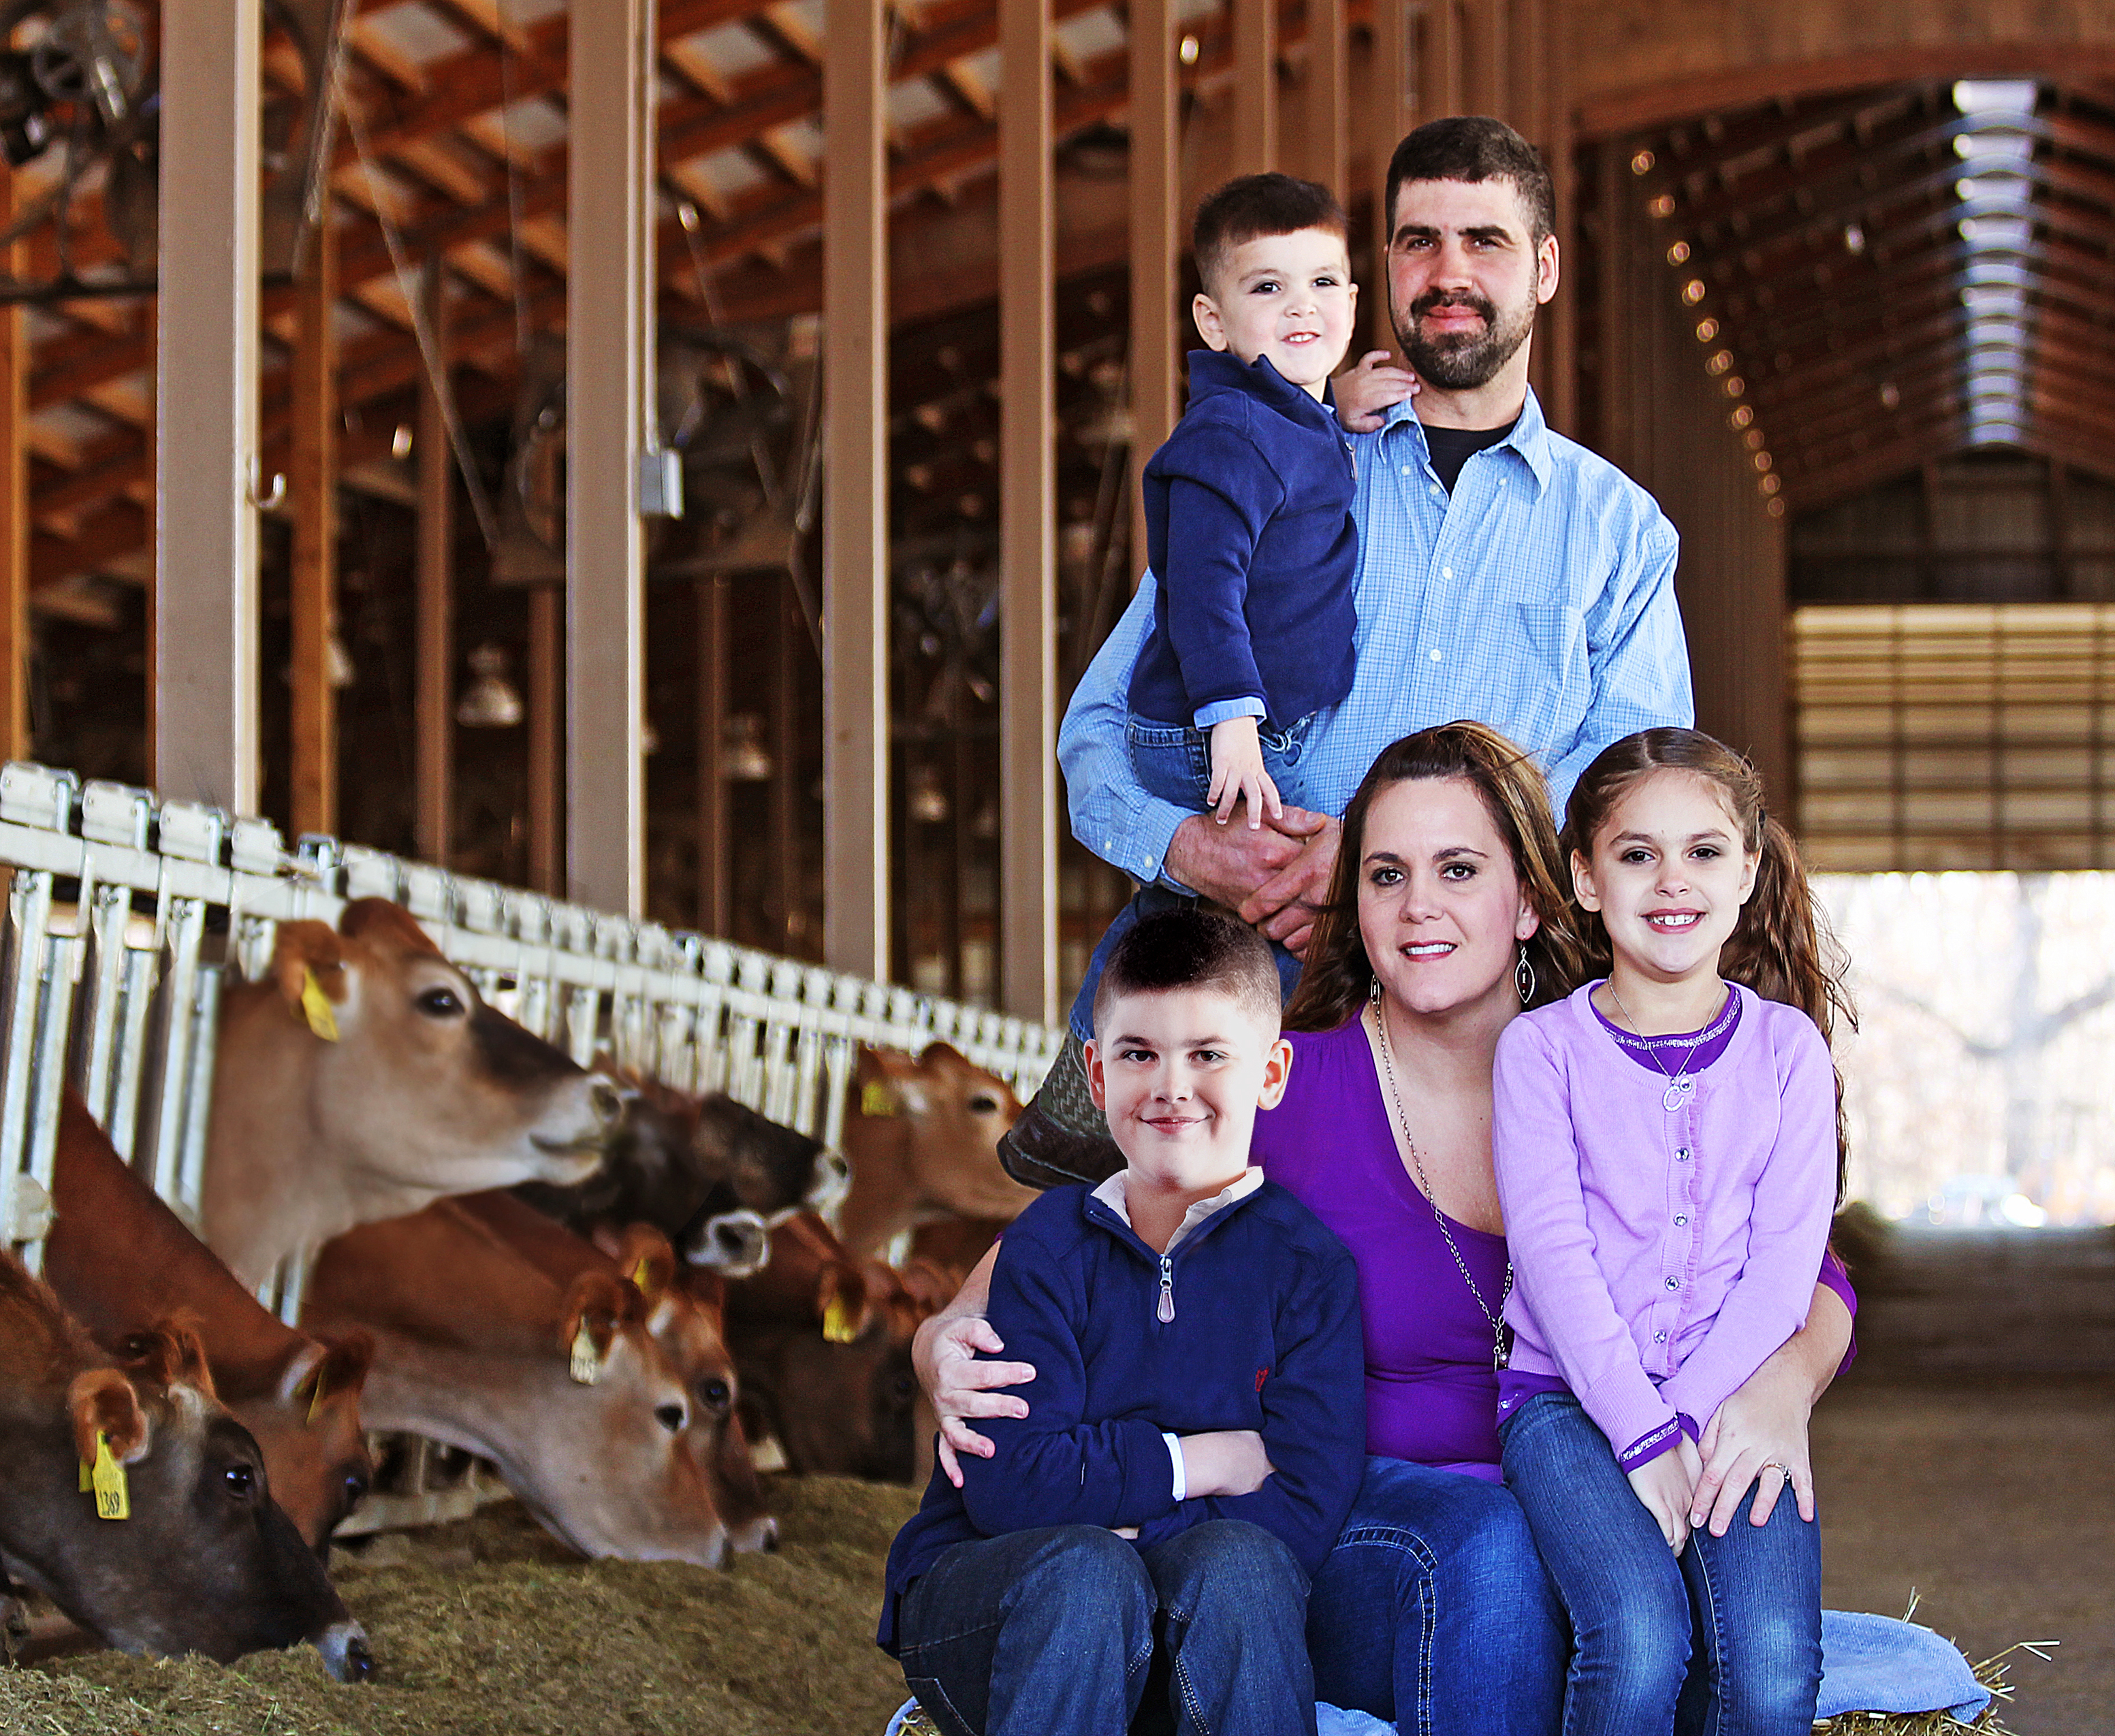 We are a family farm and proud of it! We take great pride in caring for our cattle and land that in return care for us! Karen Bohnert